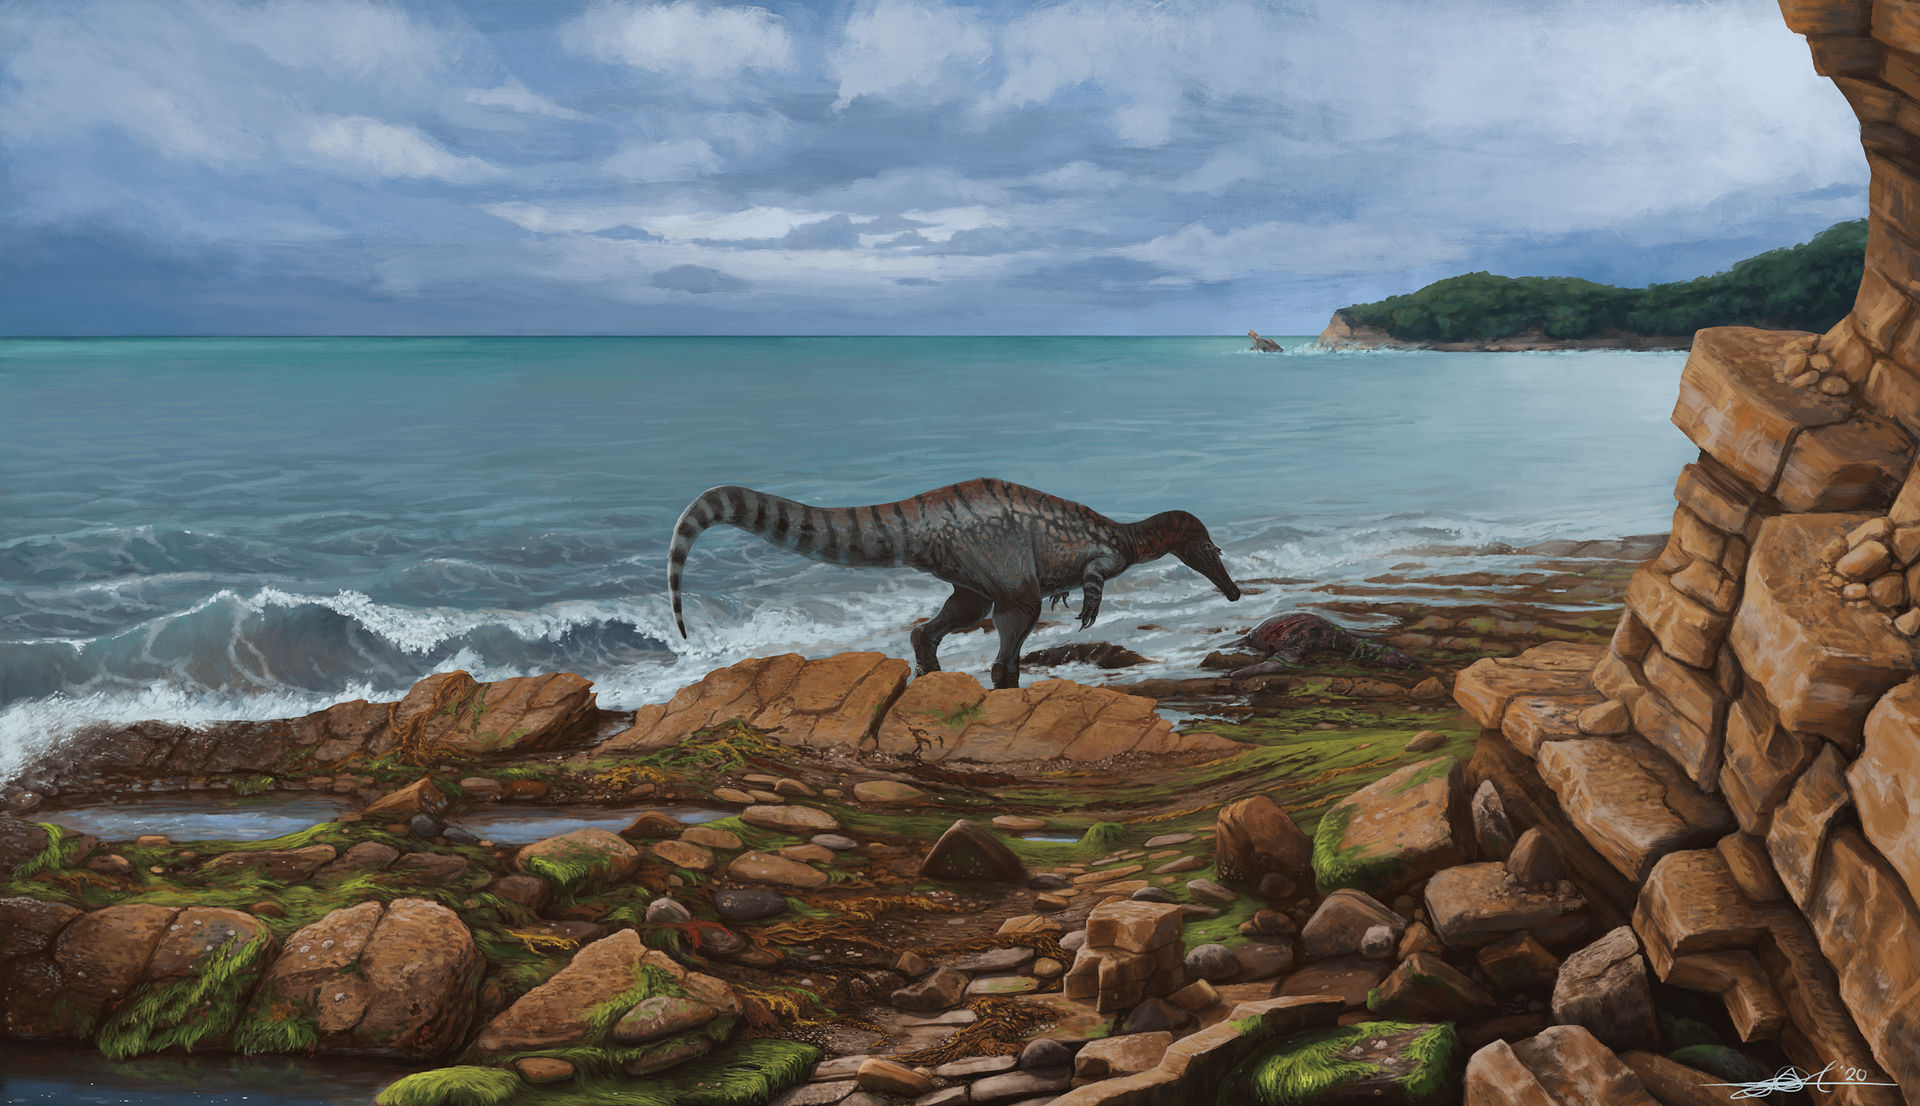 Baryonyx walkeri goes for a stroll